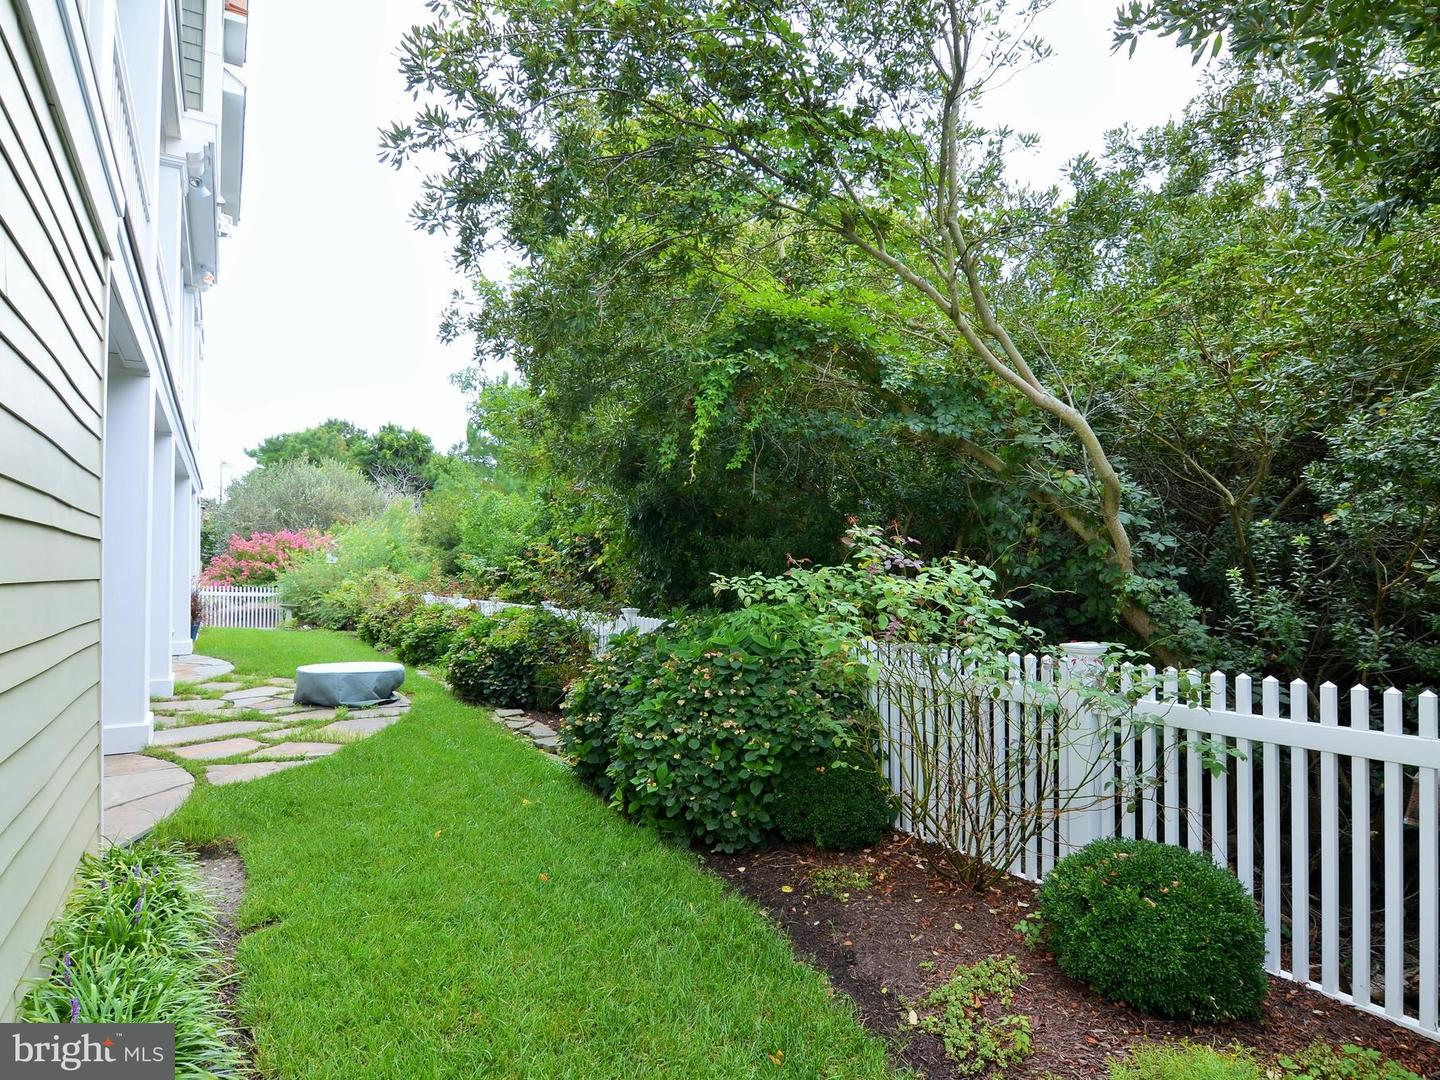 1002293530-300500805682-2018-09-25-15-08-24 31 Hall Ave | Rehoboth Beach, De Real Estate For Sale | MLS# 1002293530  - Suzanne Macnab